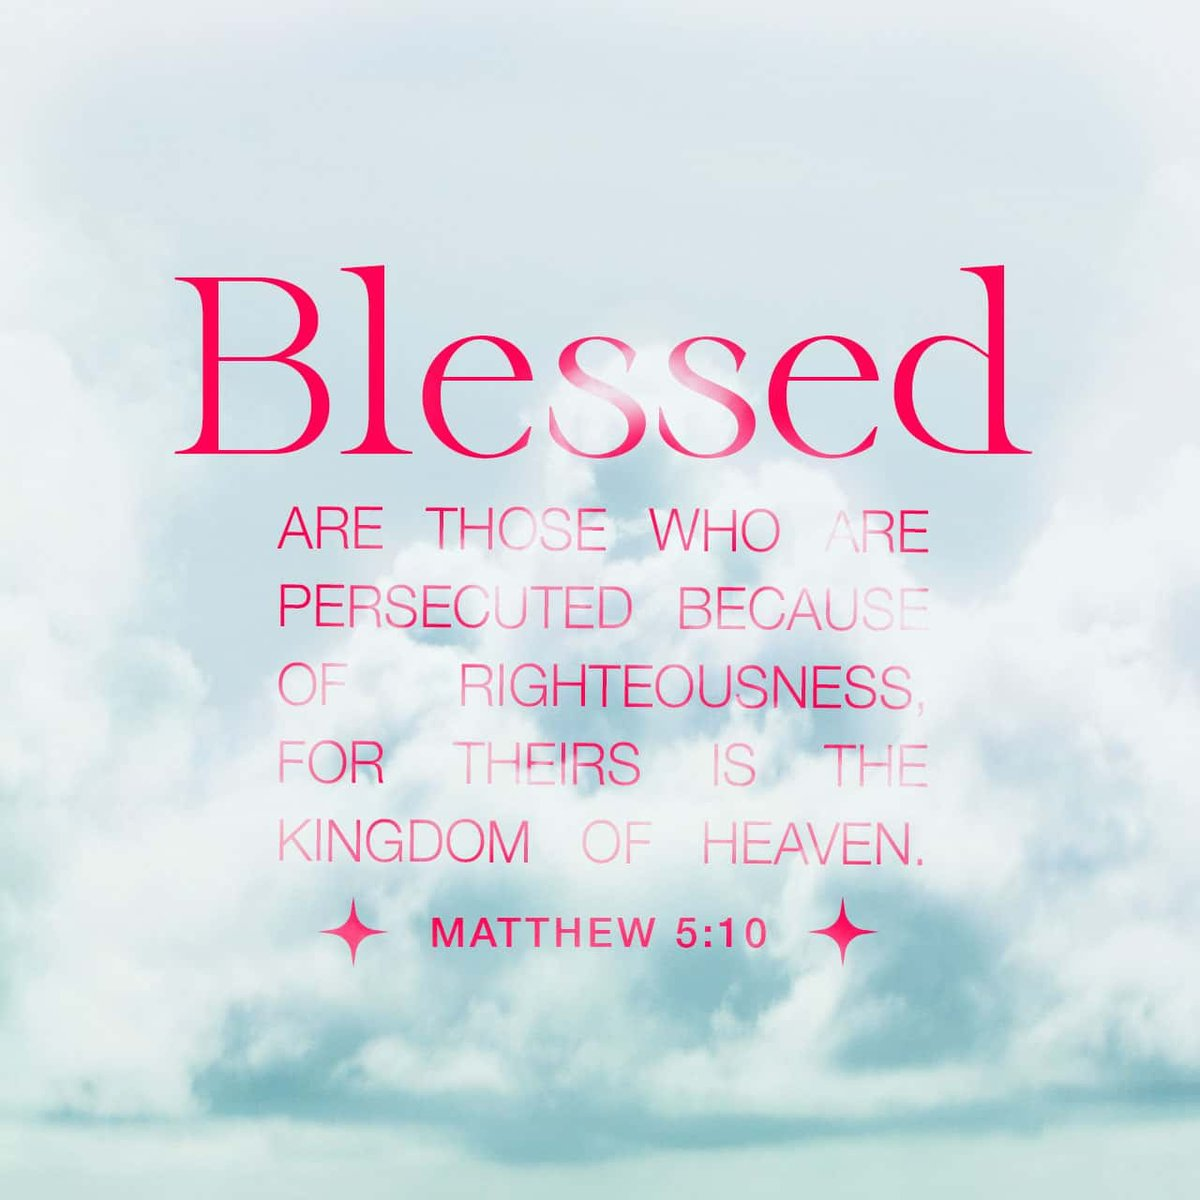 Blessed are those who are persecuted because of righteousness, for theirs is the kingdom of heaven. - Matthew 5:10 https://t.co/JVcT9sPt1a